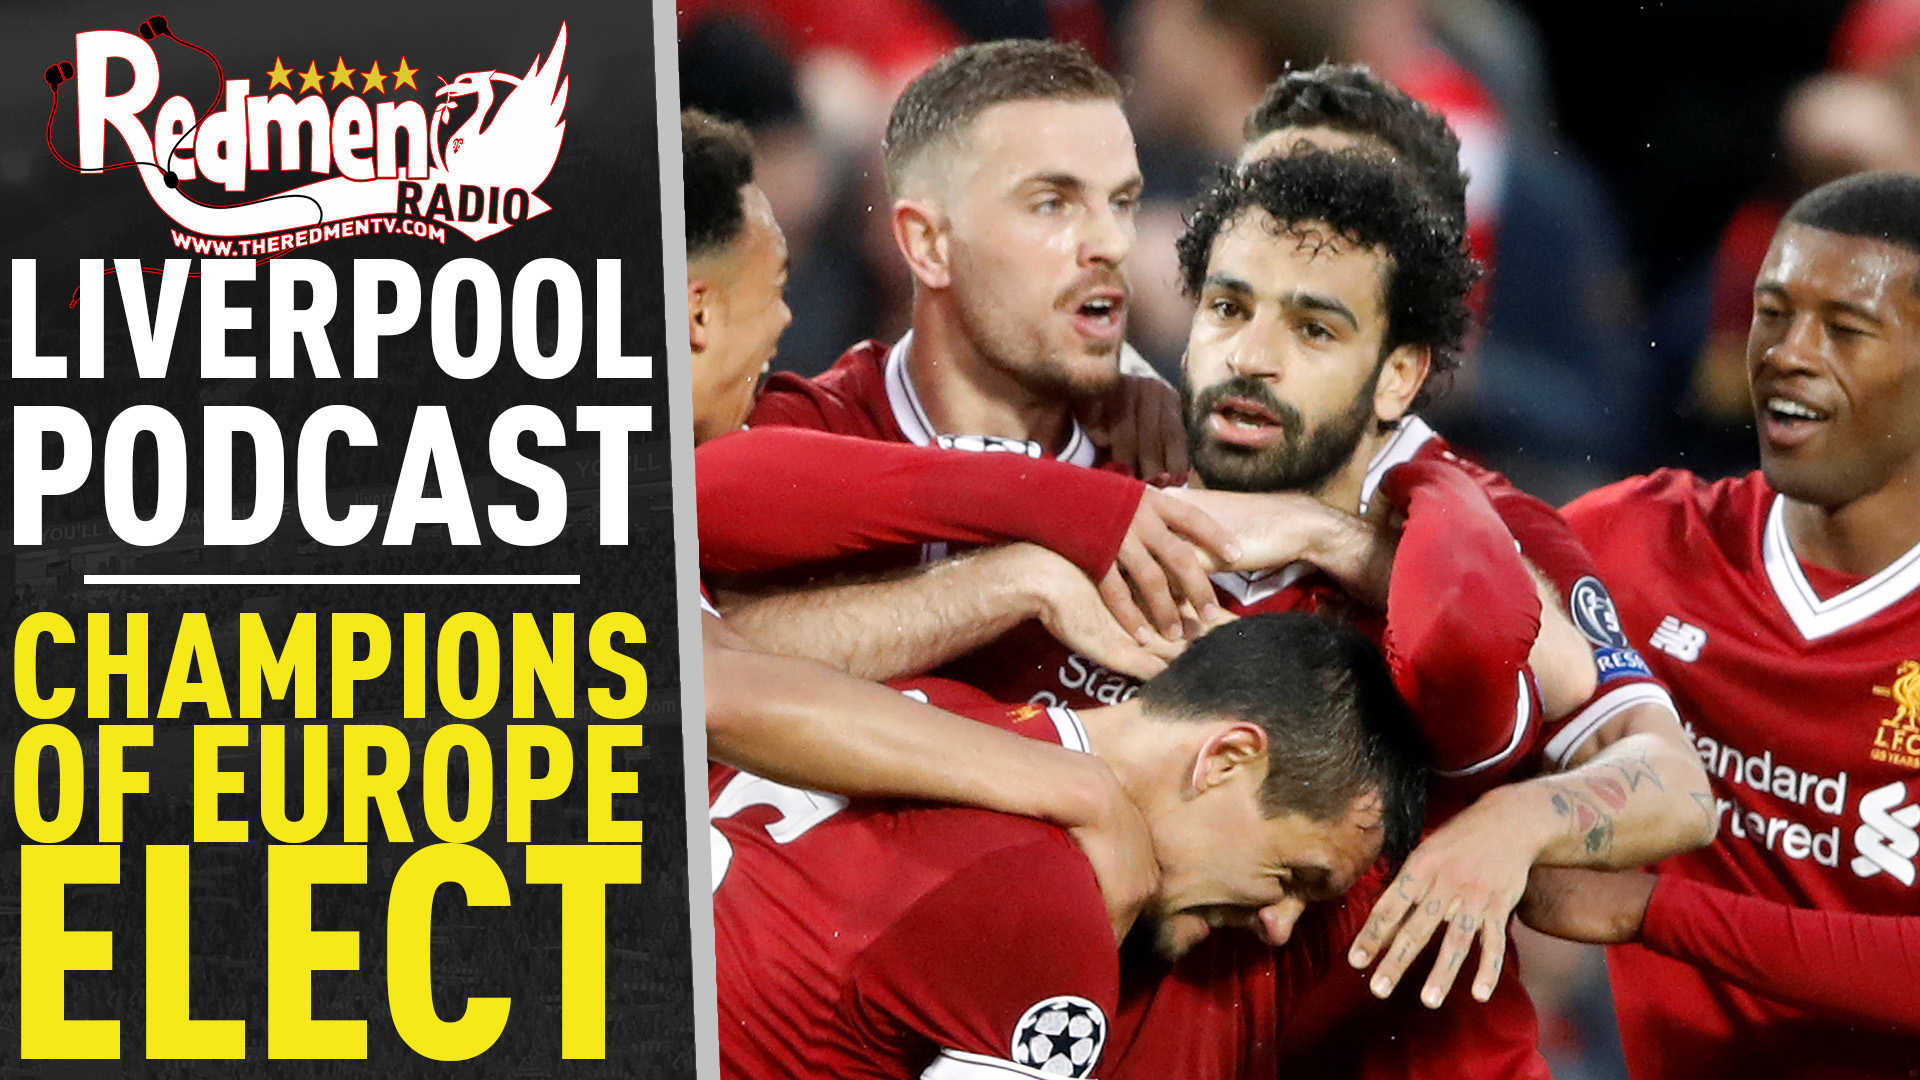 🎧 CHAMPIONS OF EUROPE-ELECT | LIVERPOOL FC PODCAST